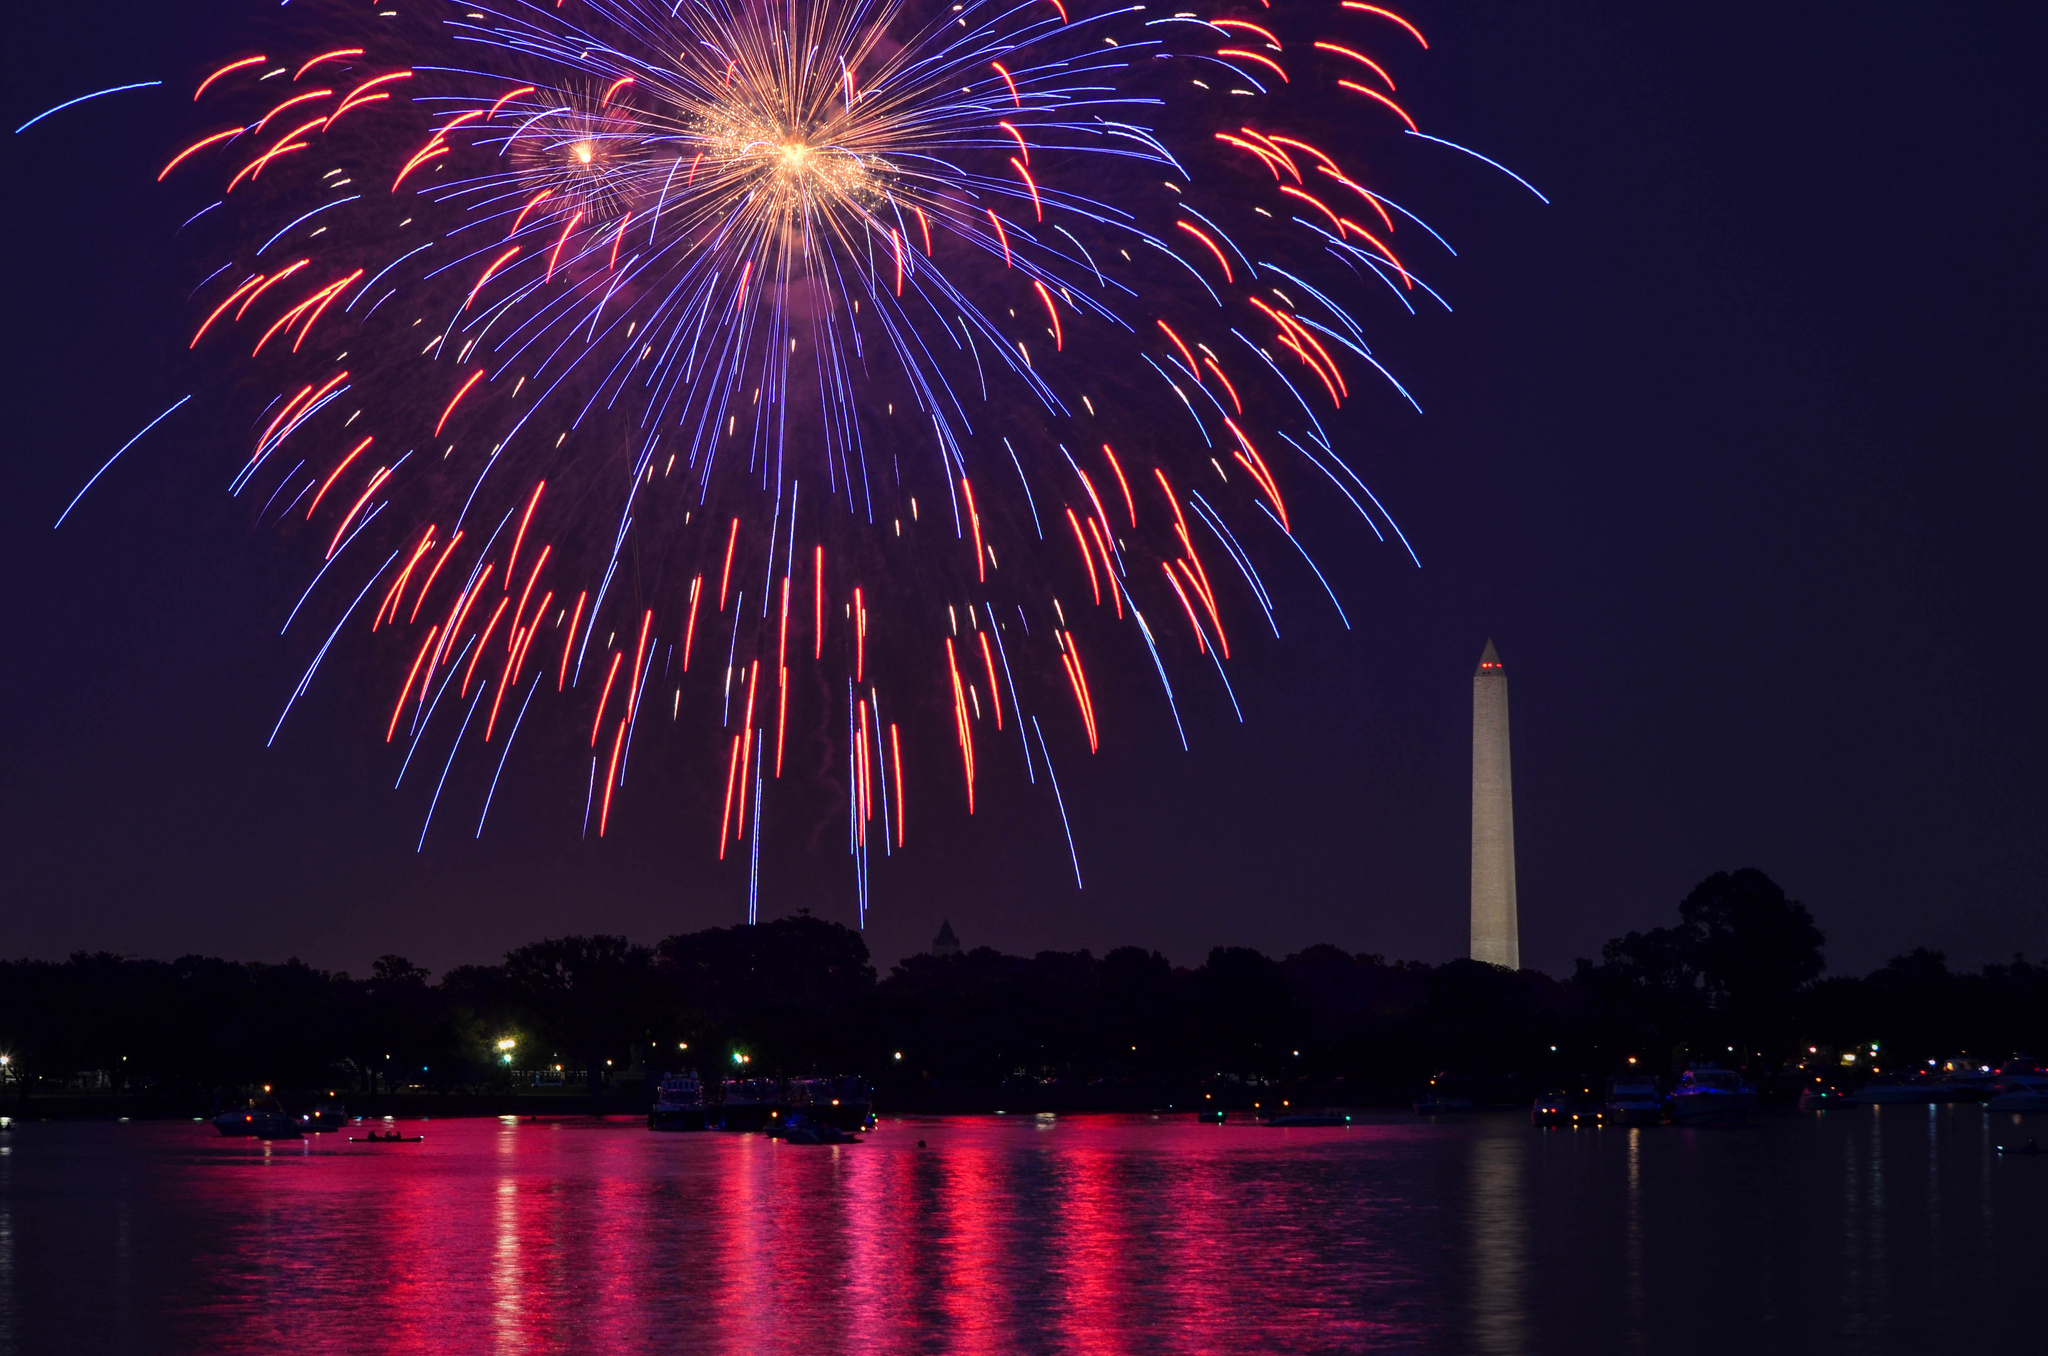 The Best 4th Of July Fireworks Shows In Washington Dc In